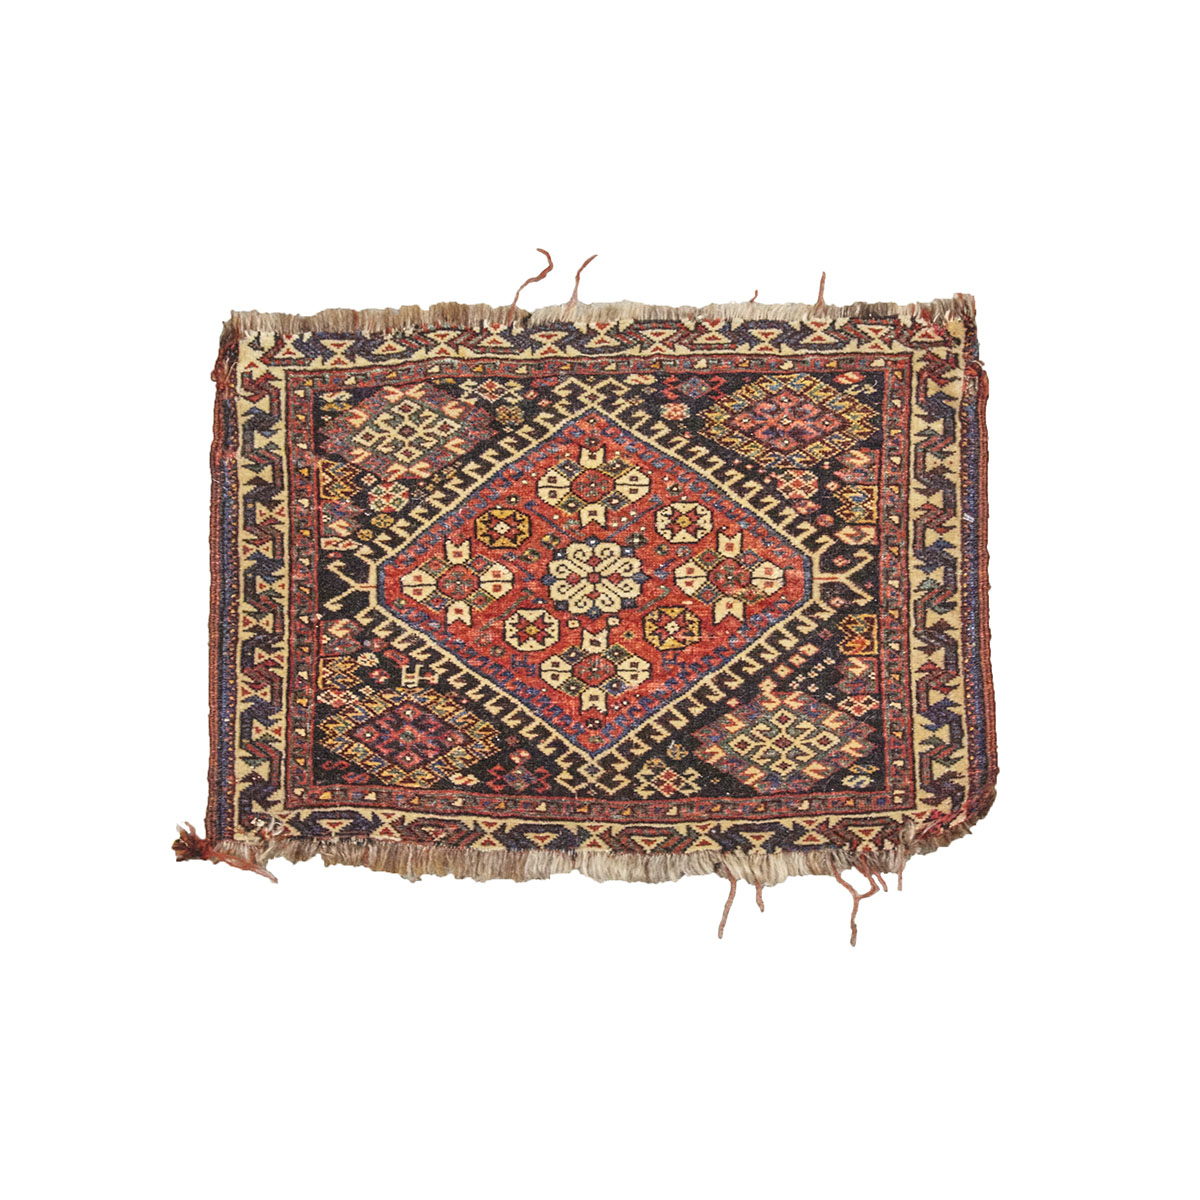 Qashqai Bag Face, c.1900, Persian